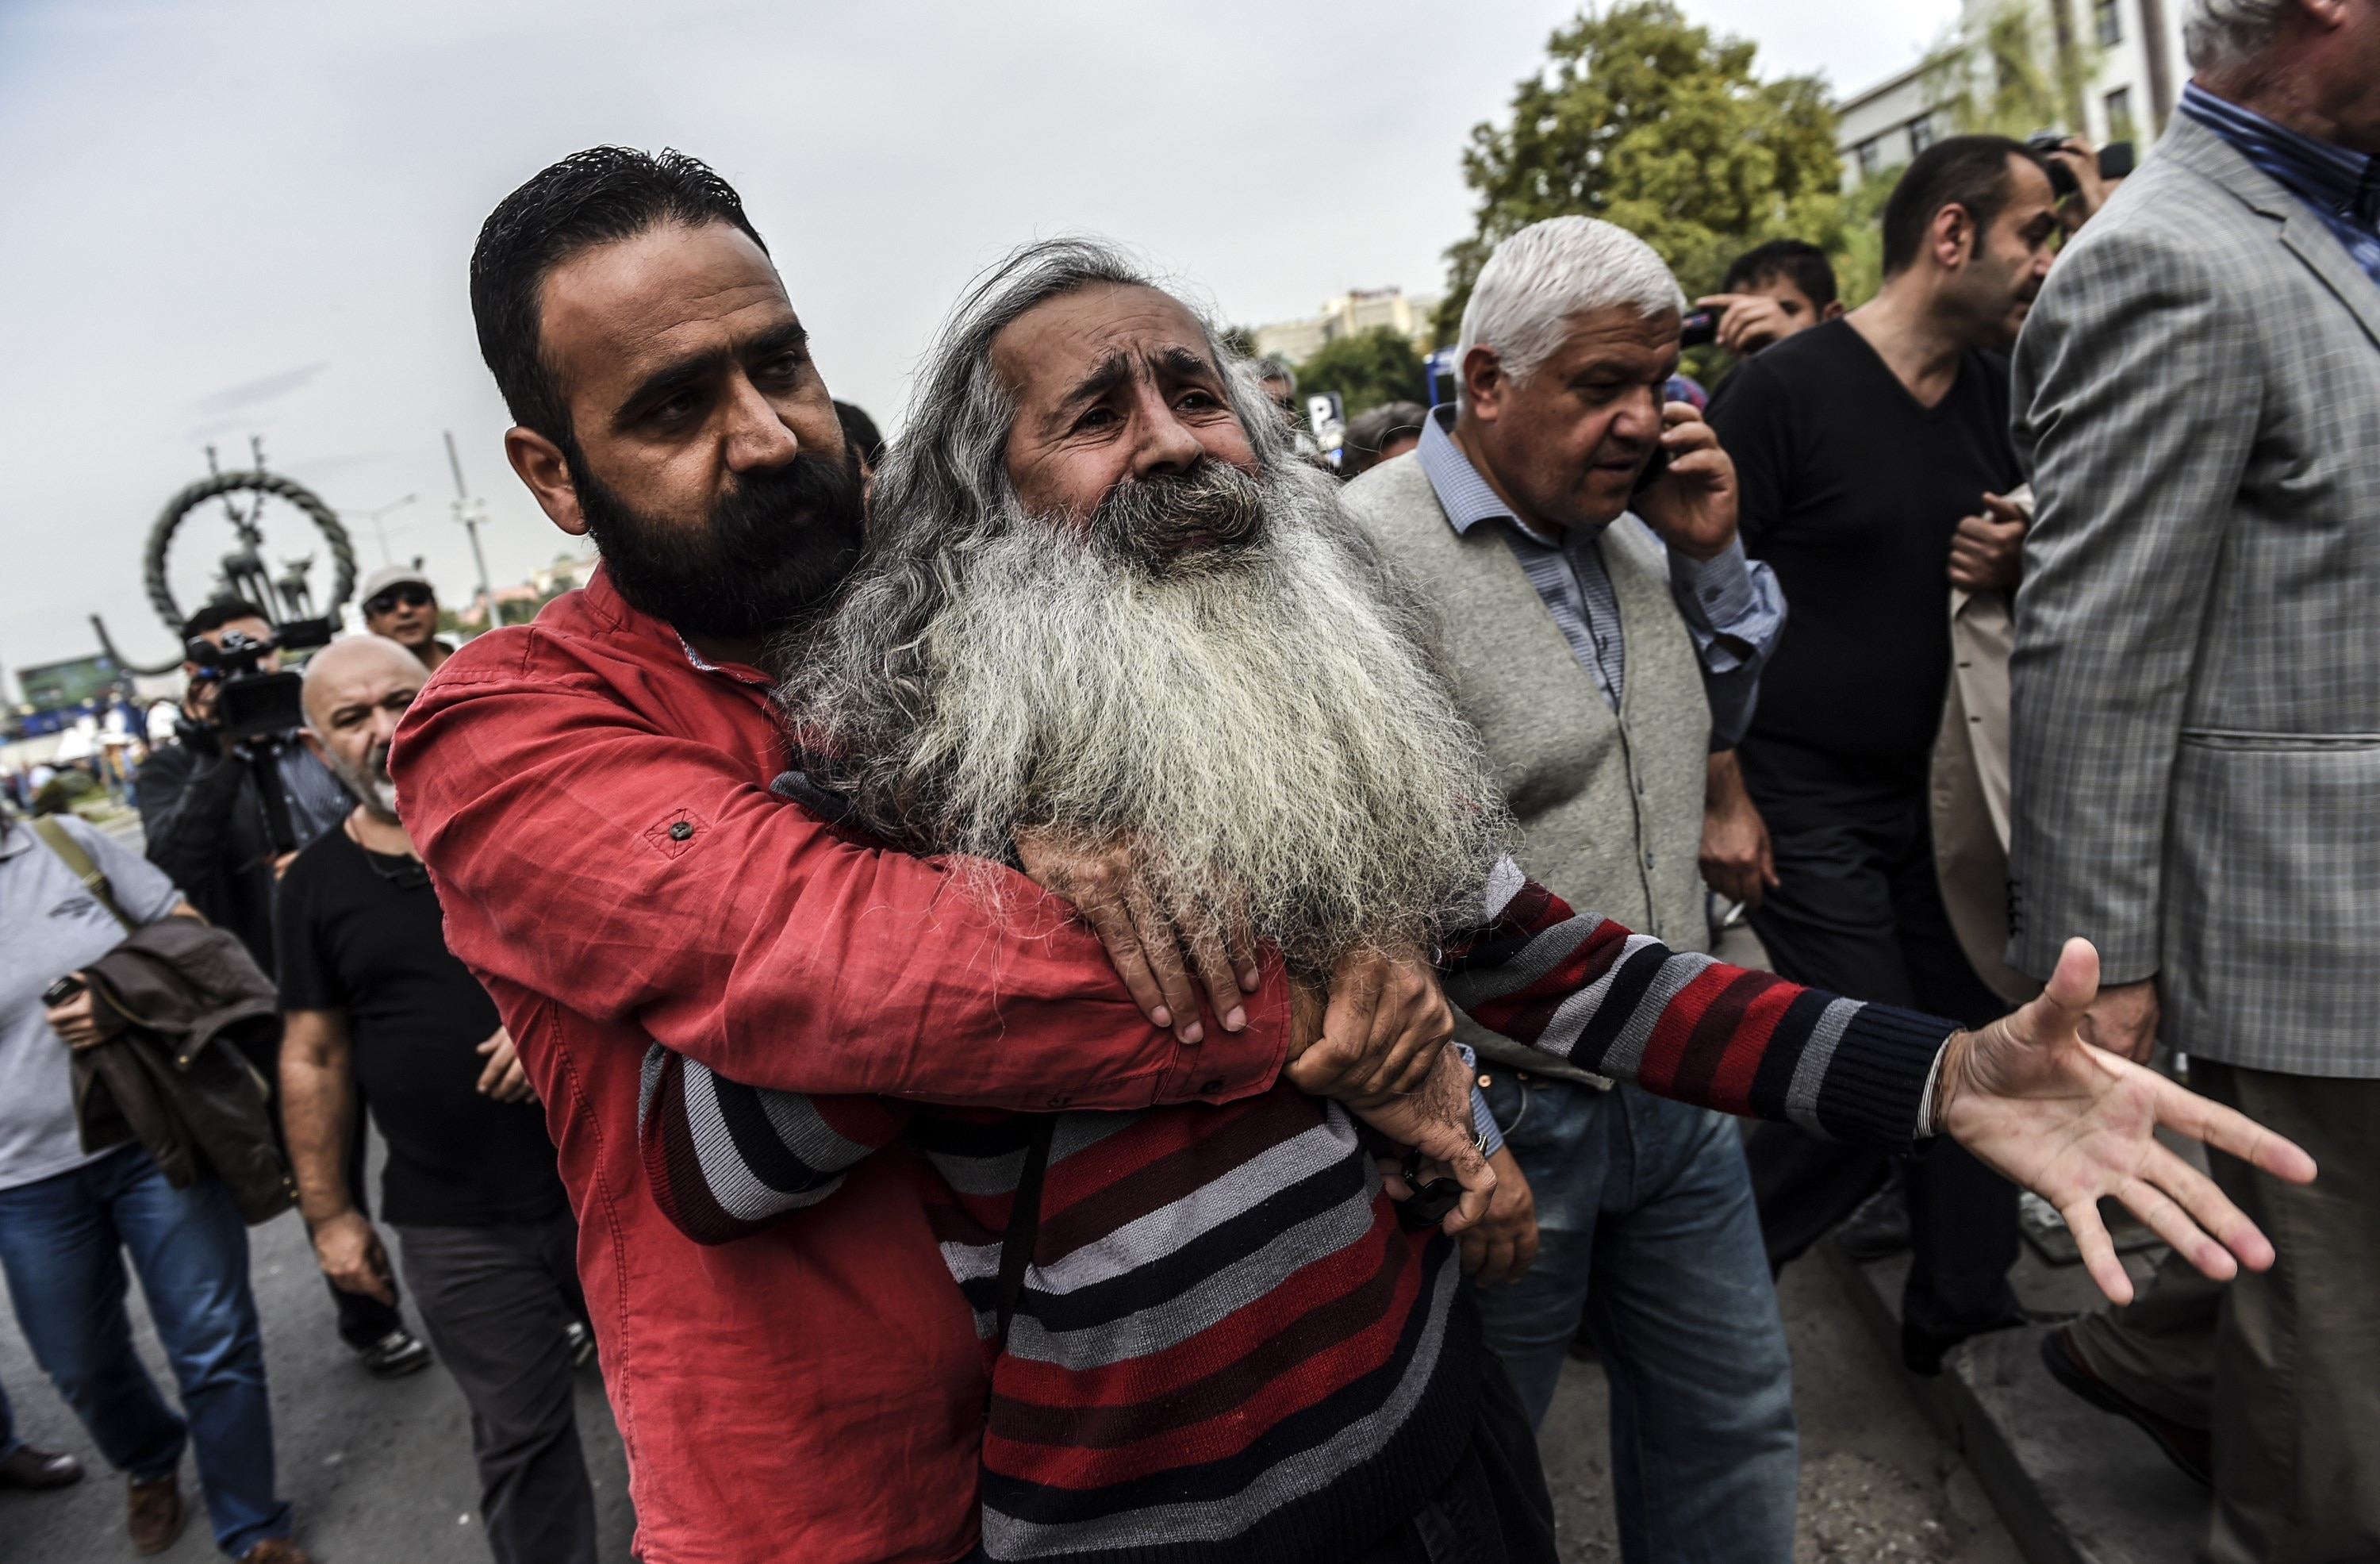 In pictures Turkish people protest mourn victims  SBS News